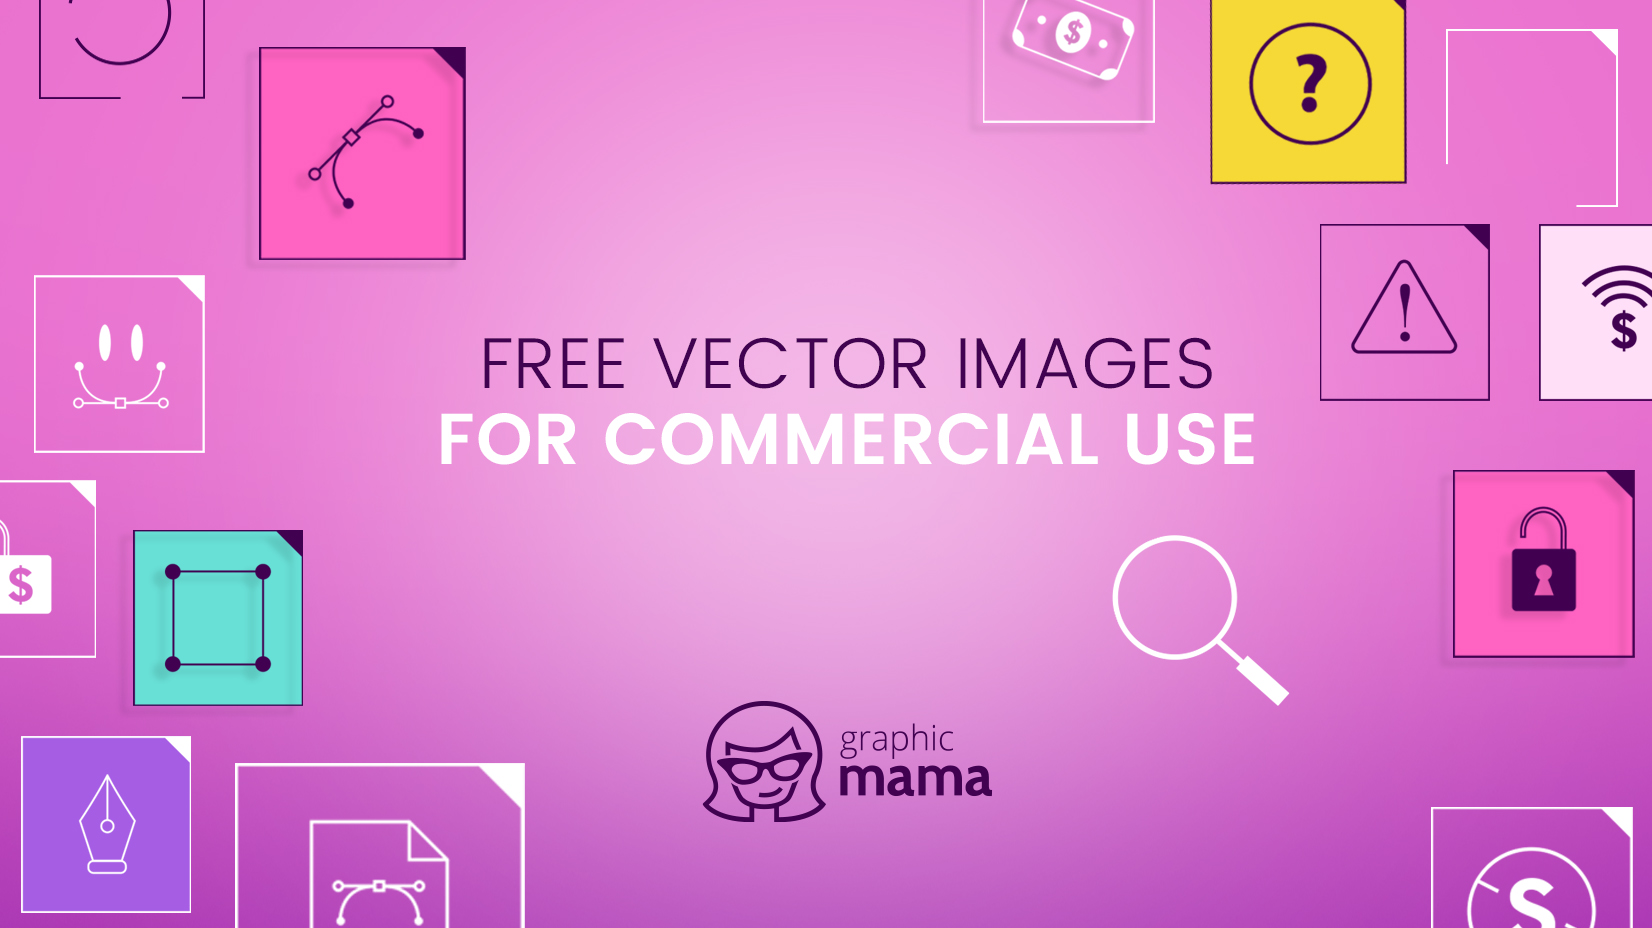 1652x928 Where To Find Free Vector Images For Commercial Use Graphicmama